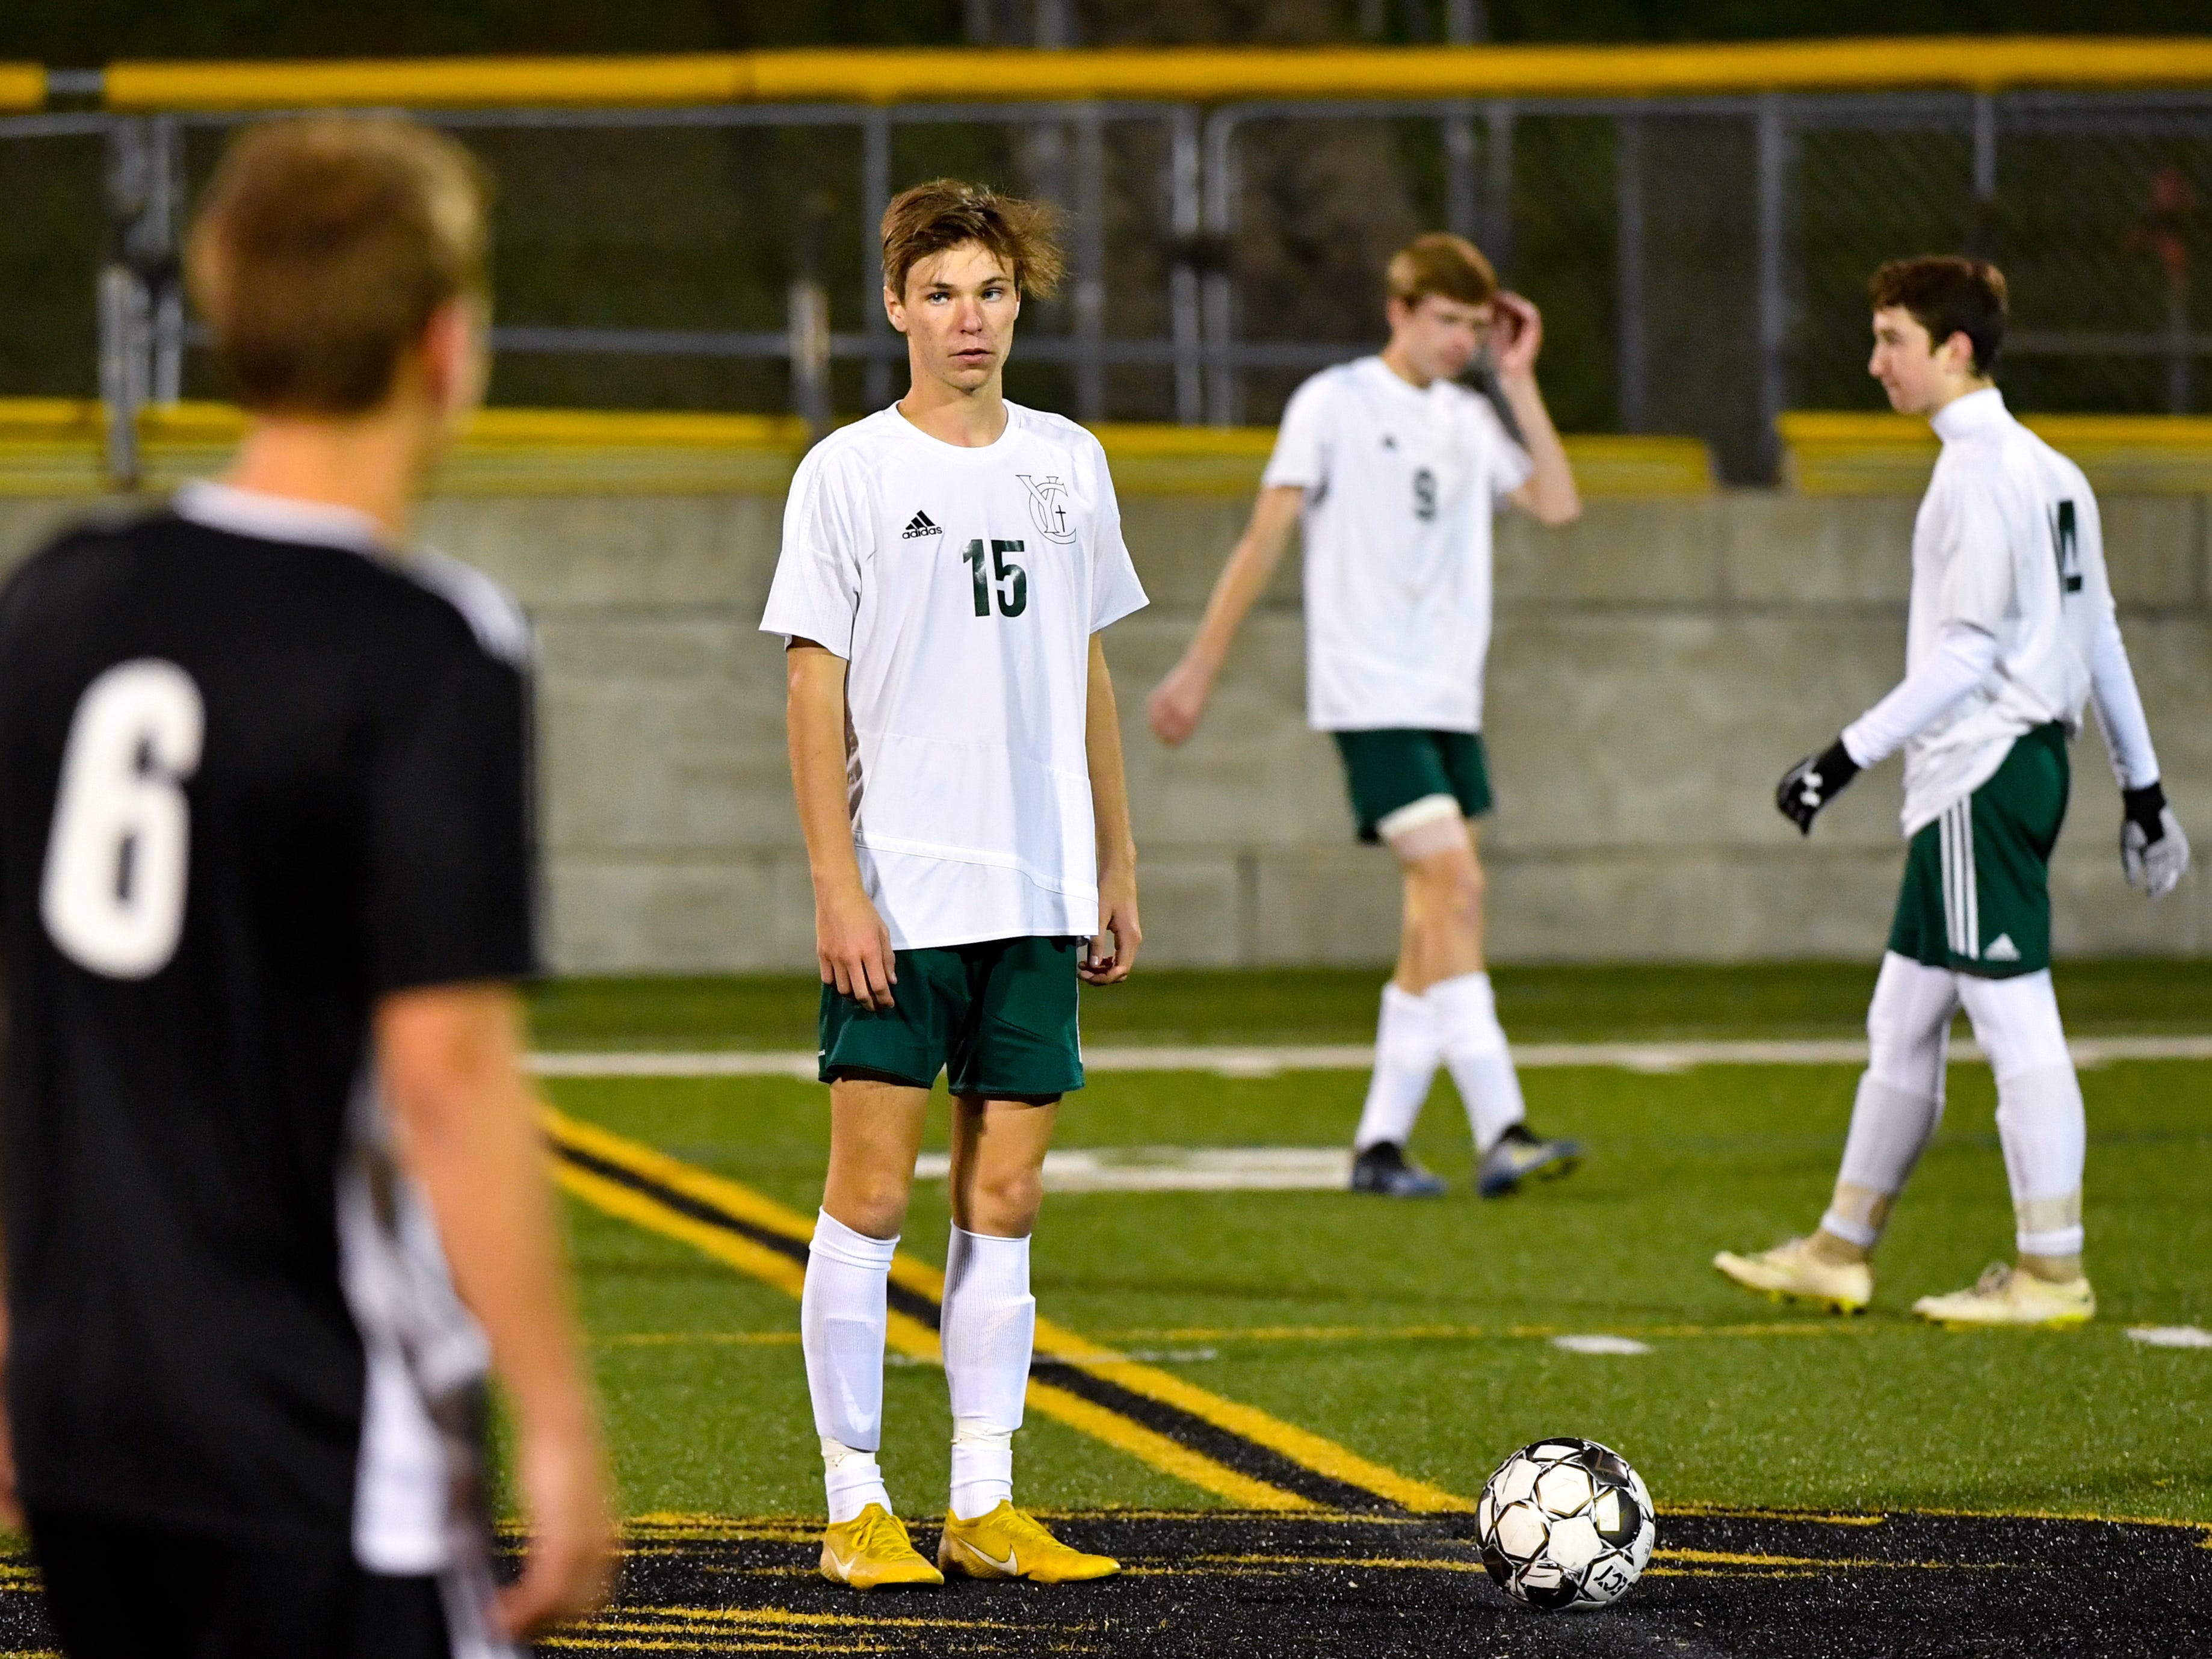 Jonathan Yinger (15) prepares to kick the ball off to start the half during the boys soccer game between South Western and York Catholic, October 16, 2018. The Mustangs beat the Irish 2-1.